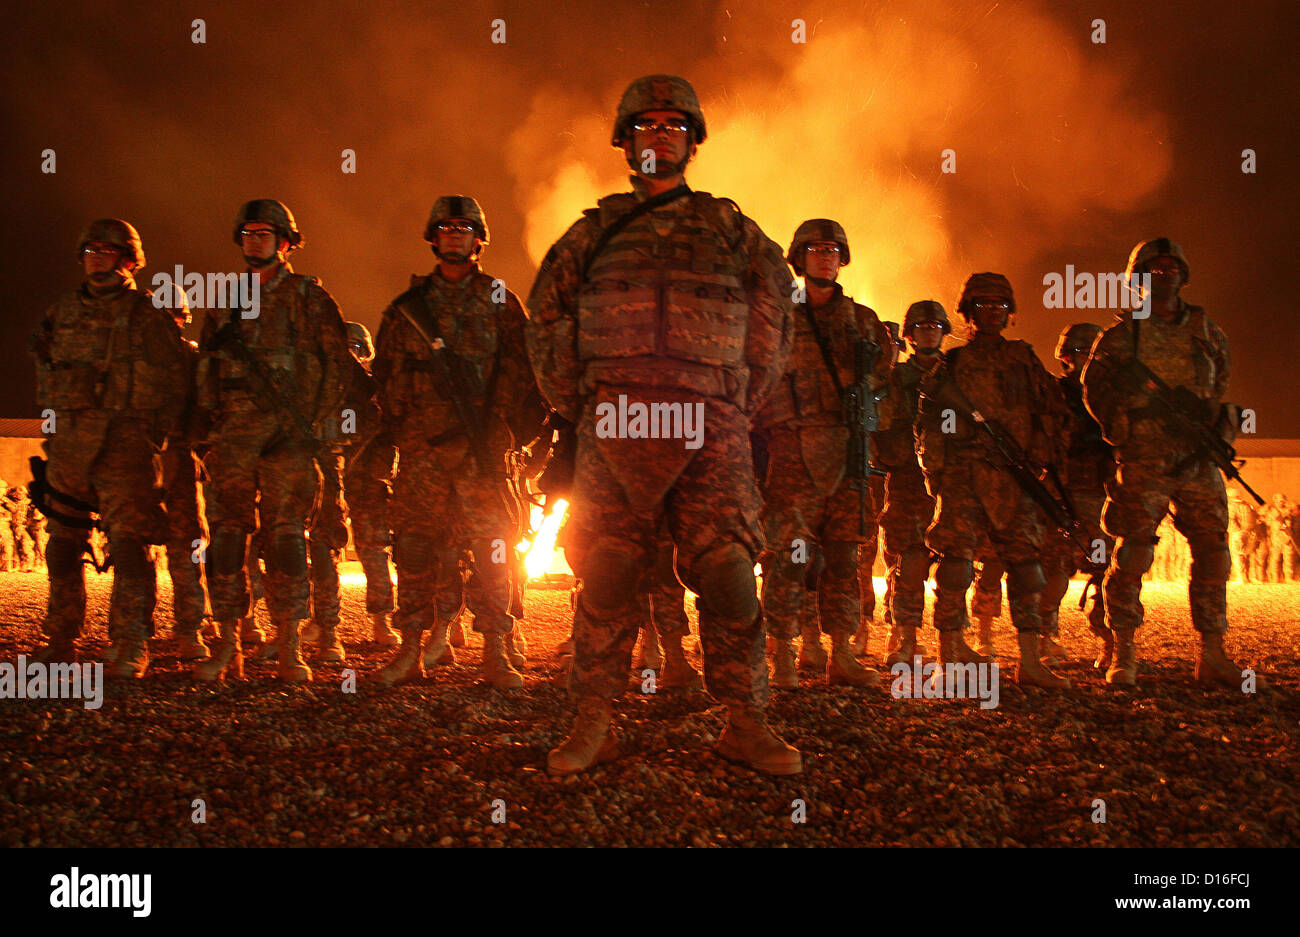 A bonfire lit the sky in Babil Province, Iraq March 3, 2009 as 22 Army graduates were welcomed into the ranks of - Stock Image